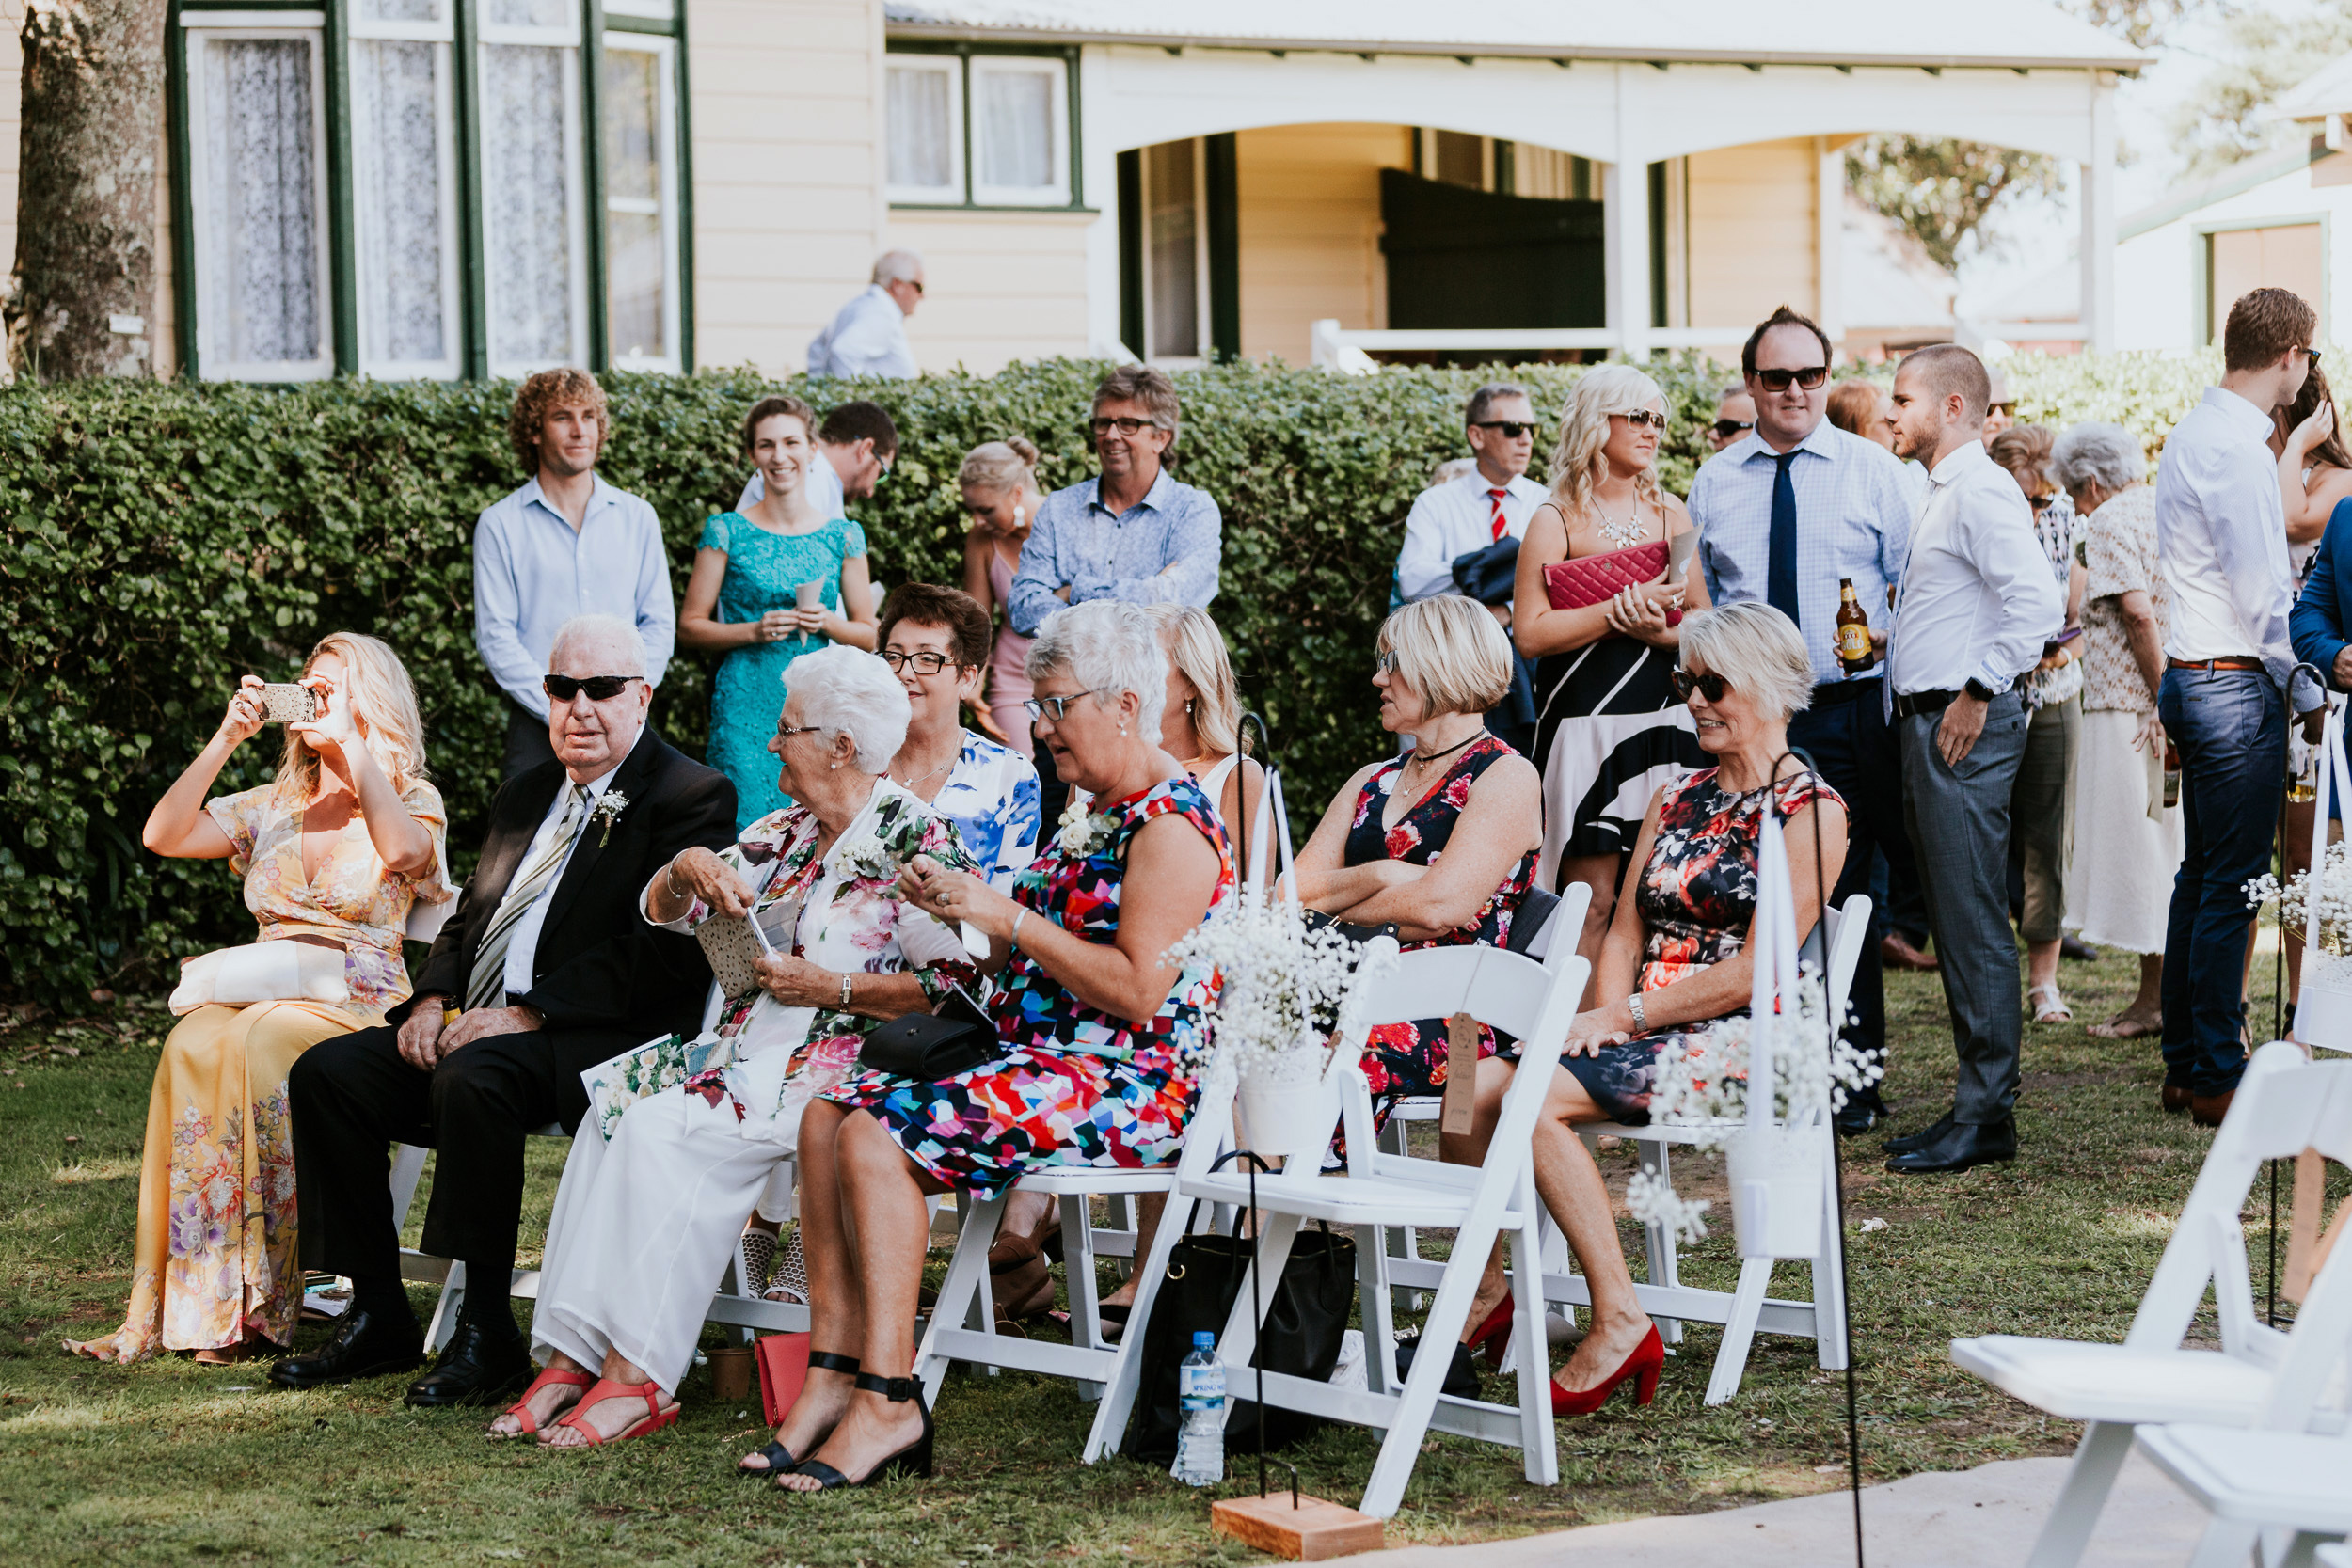 20170311 - Holly & Dan Coolangatta Estate Wedding | 079-2.jpg